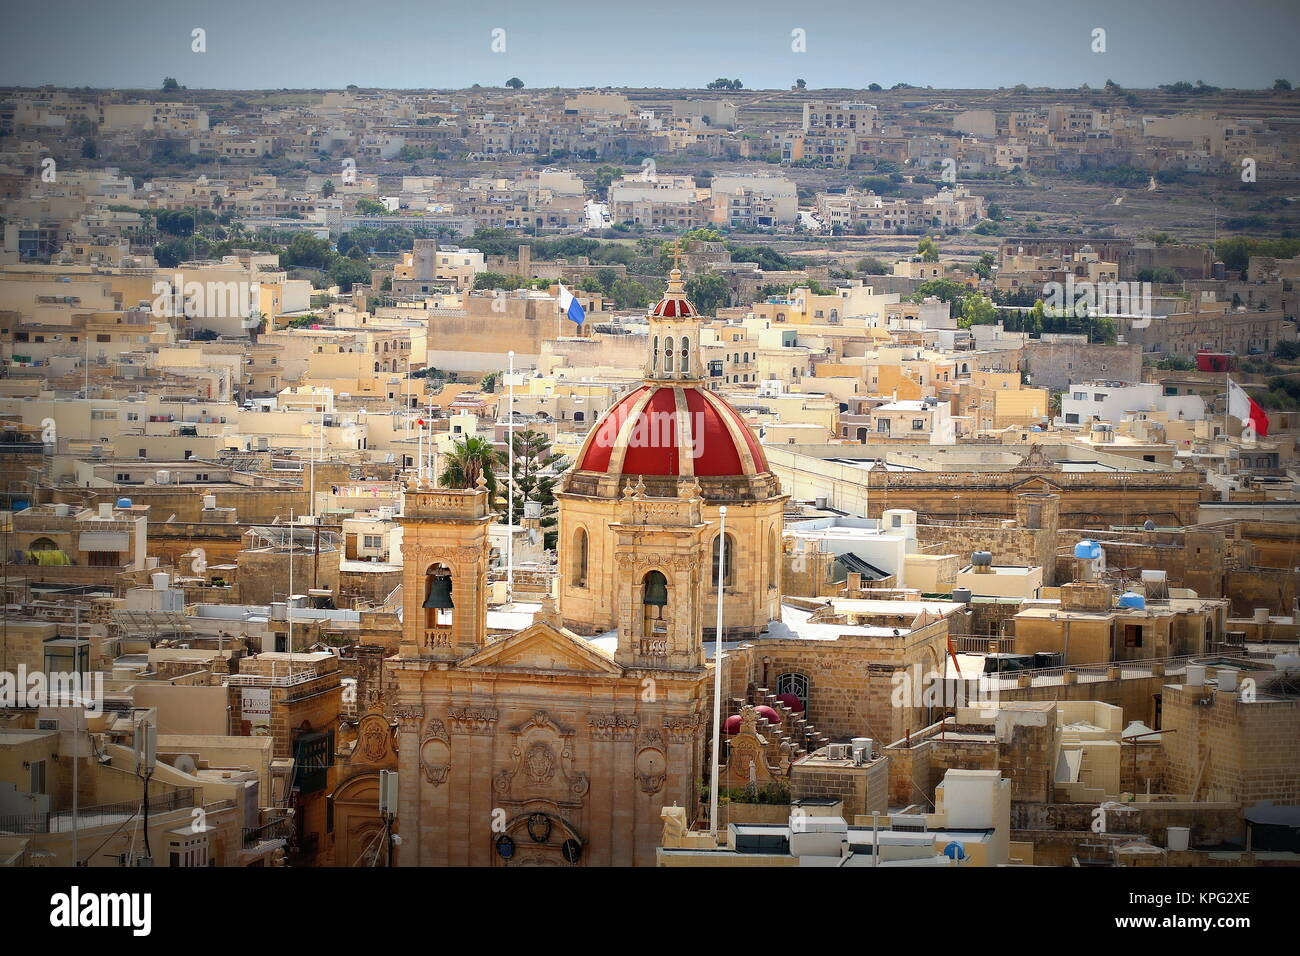 View over the city of Victoria or Rabat at Gozo, the neighboring island of Malta - Stock Image